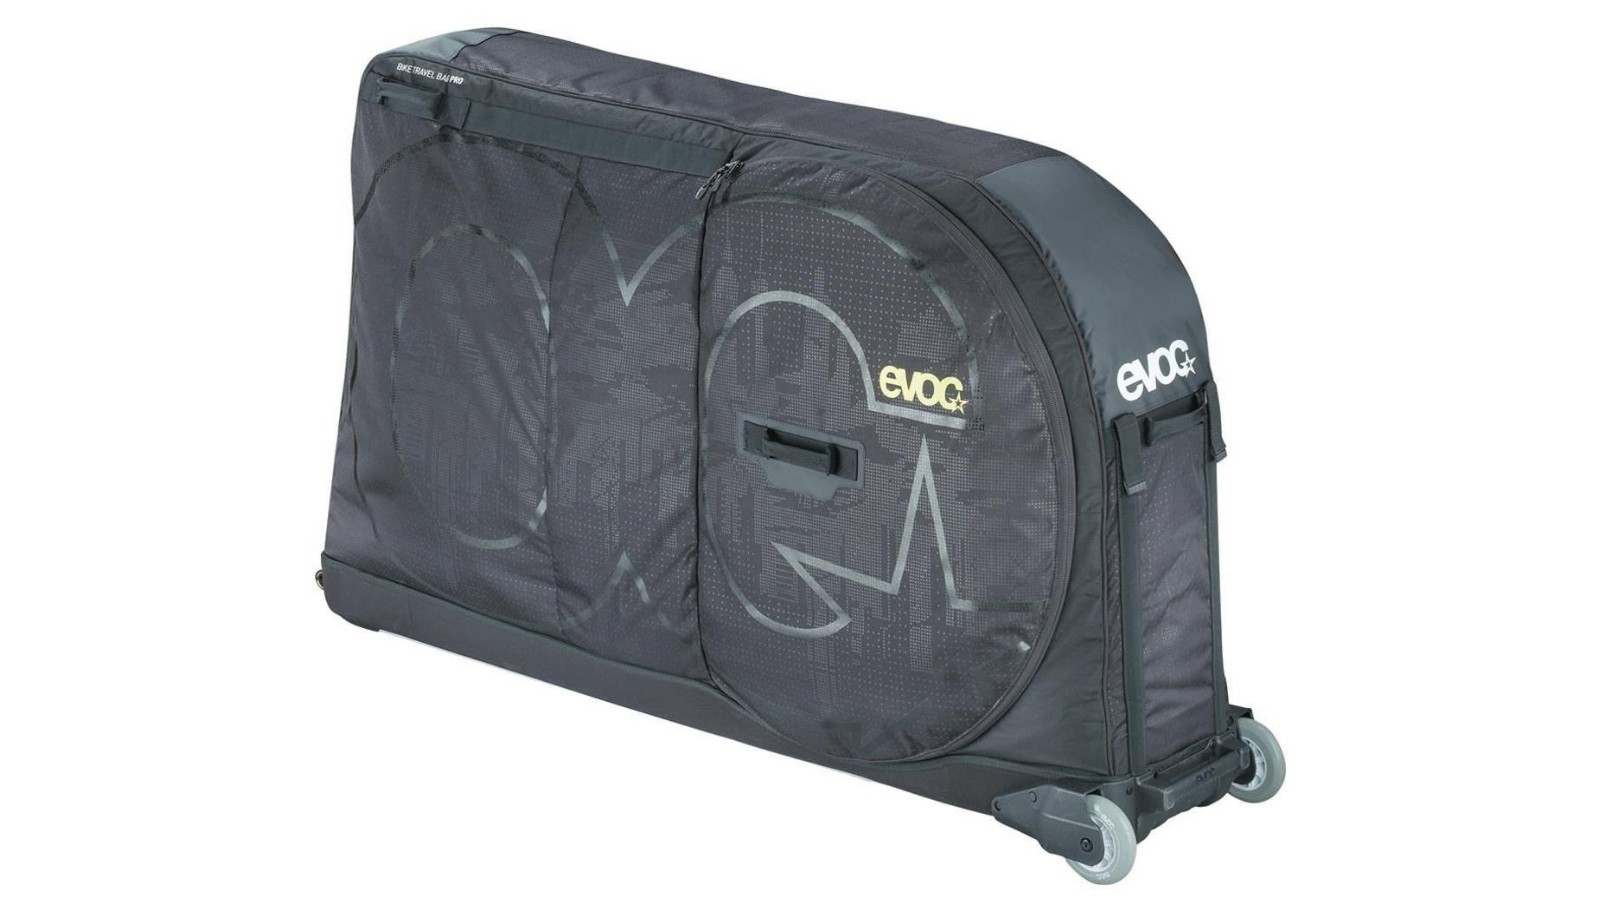 The Evoc Bike Travel Bag Pro packs small, is light, and is easy rolling